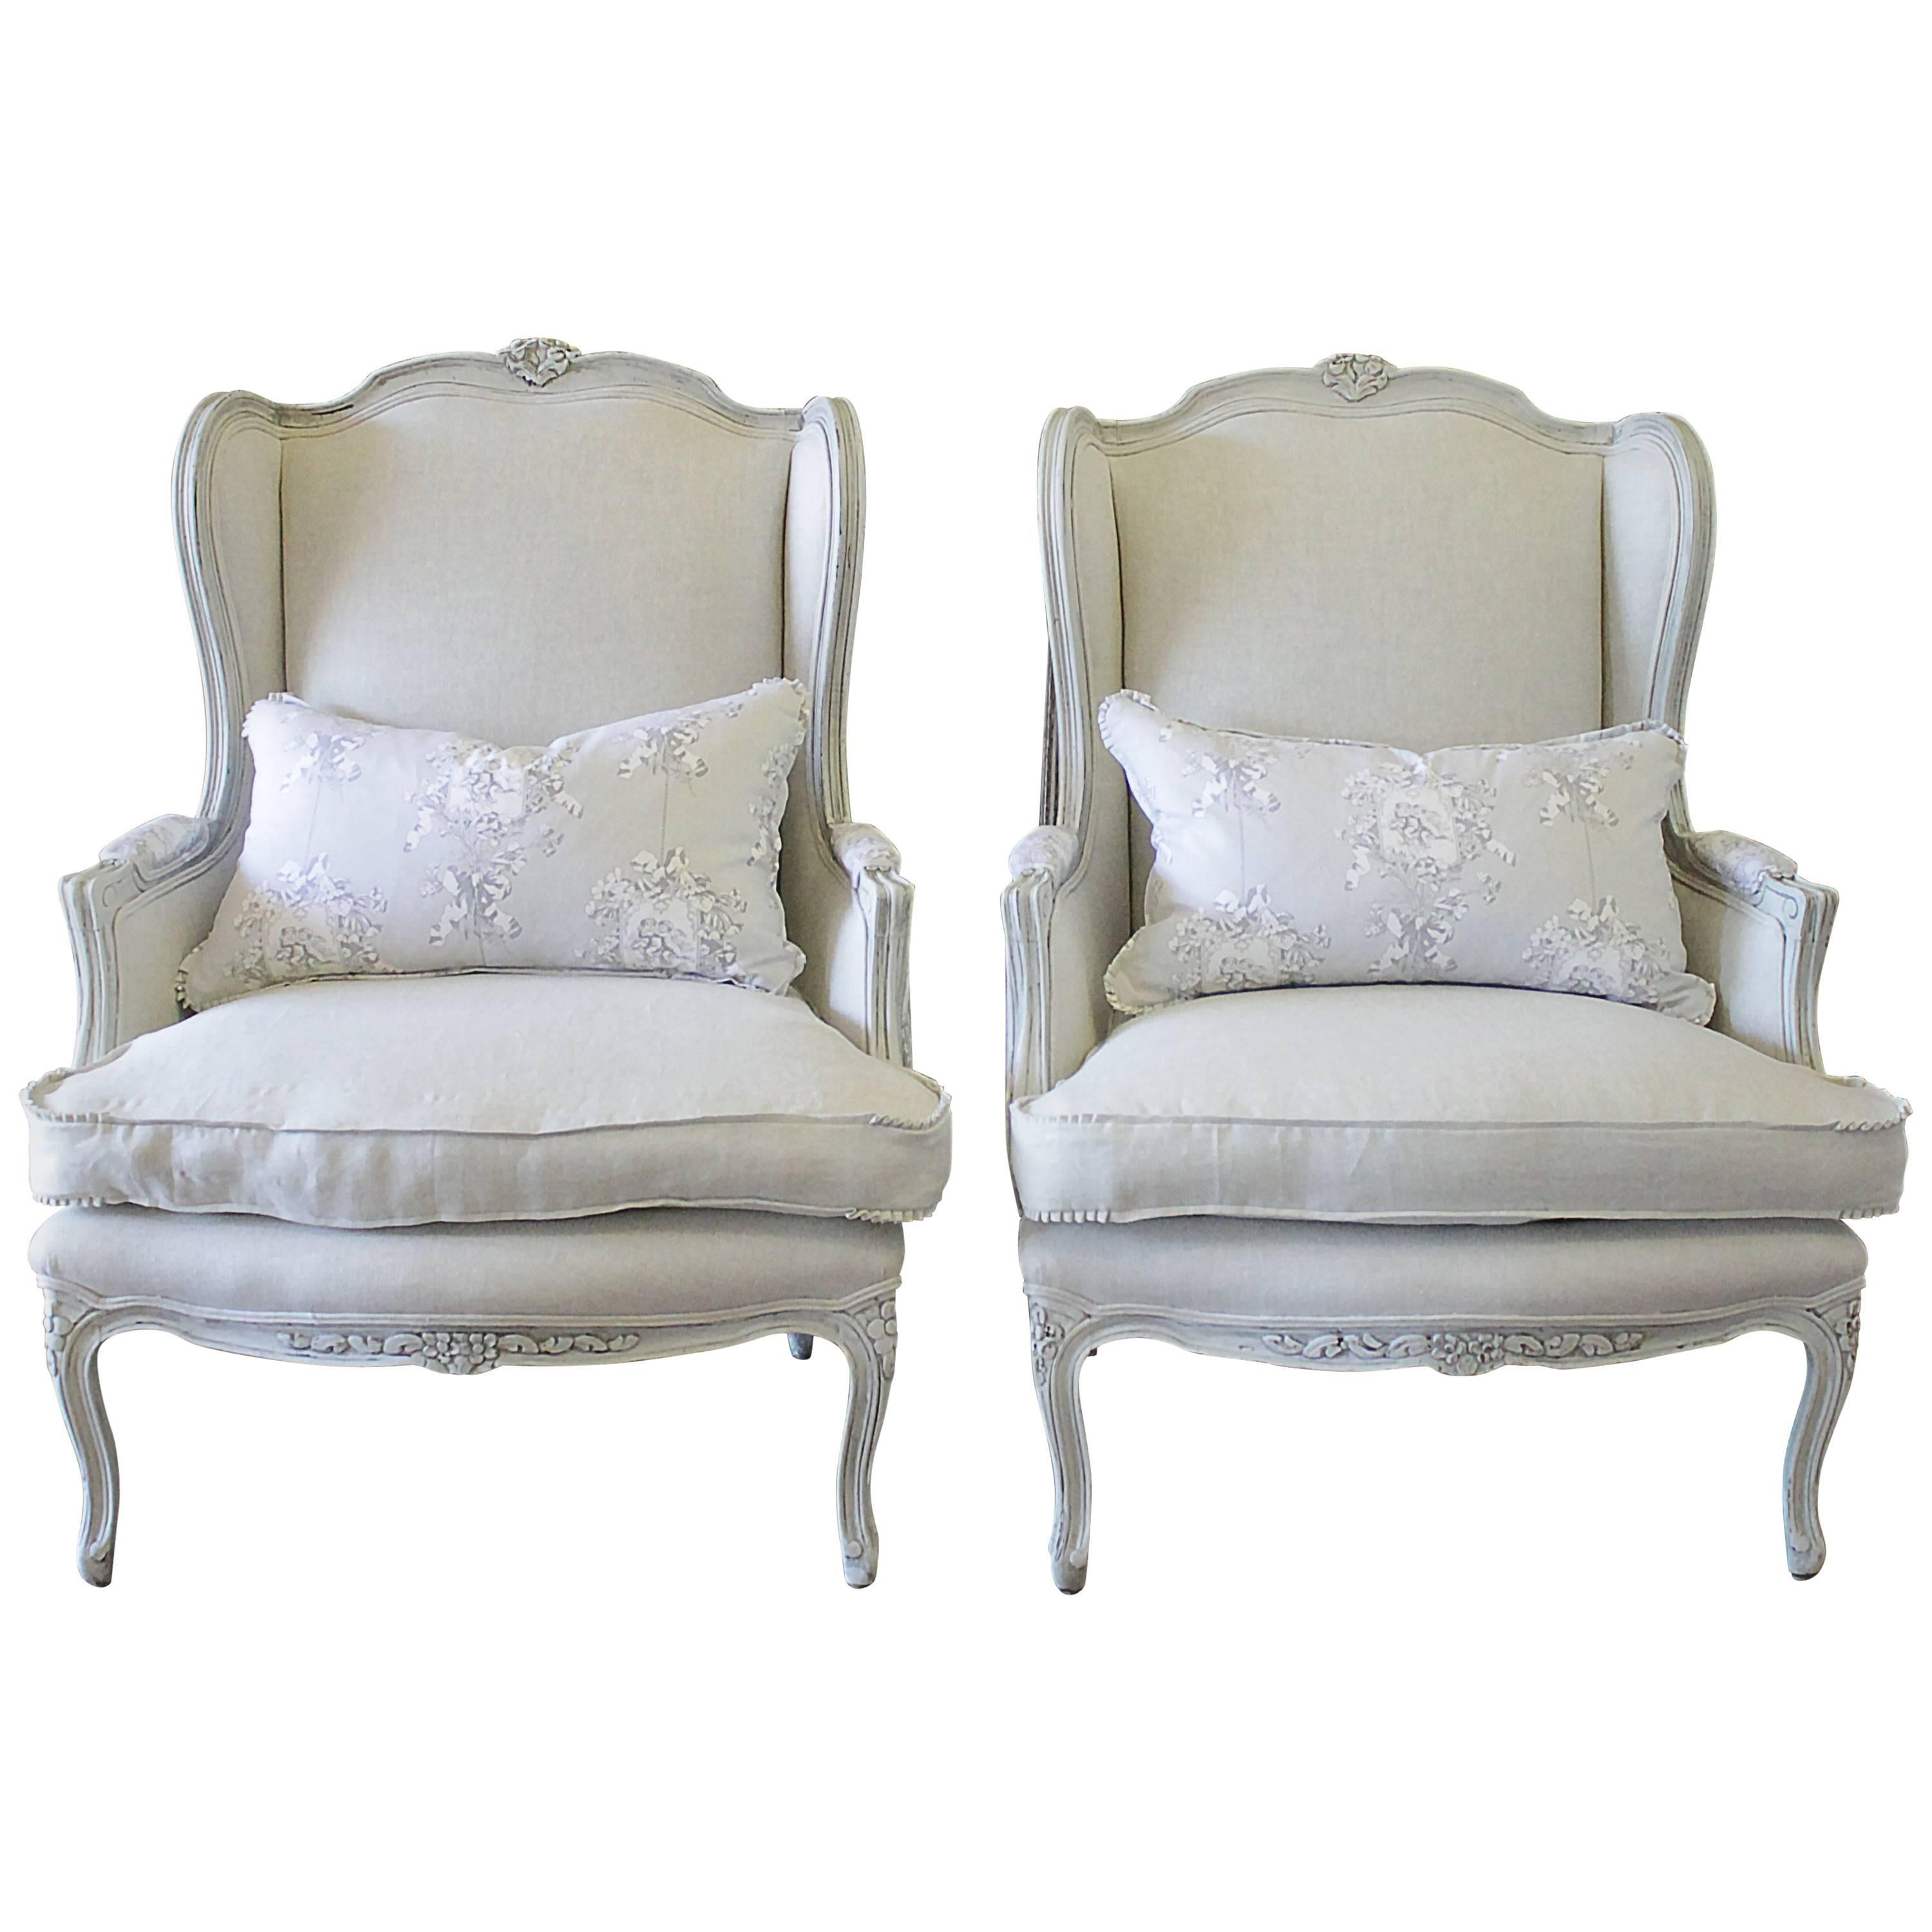 country style wingback chairs where to buy chair covers in canada antique pair of french bergere at 1stdibs for sale